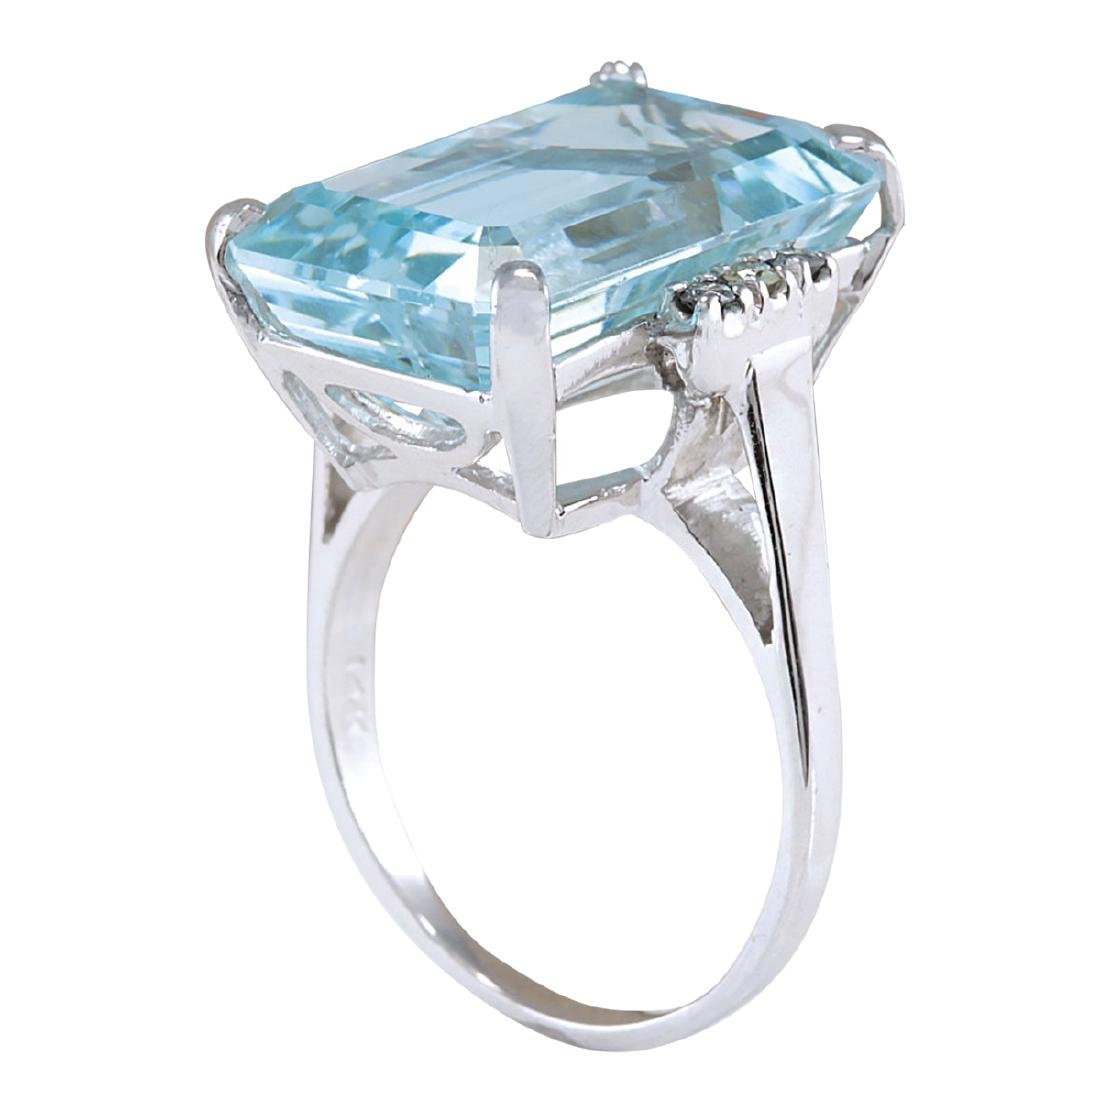 16.42CTW Natural Blue Aquamarine Diamond Ring 18K Solid - 3